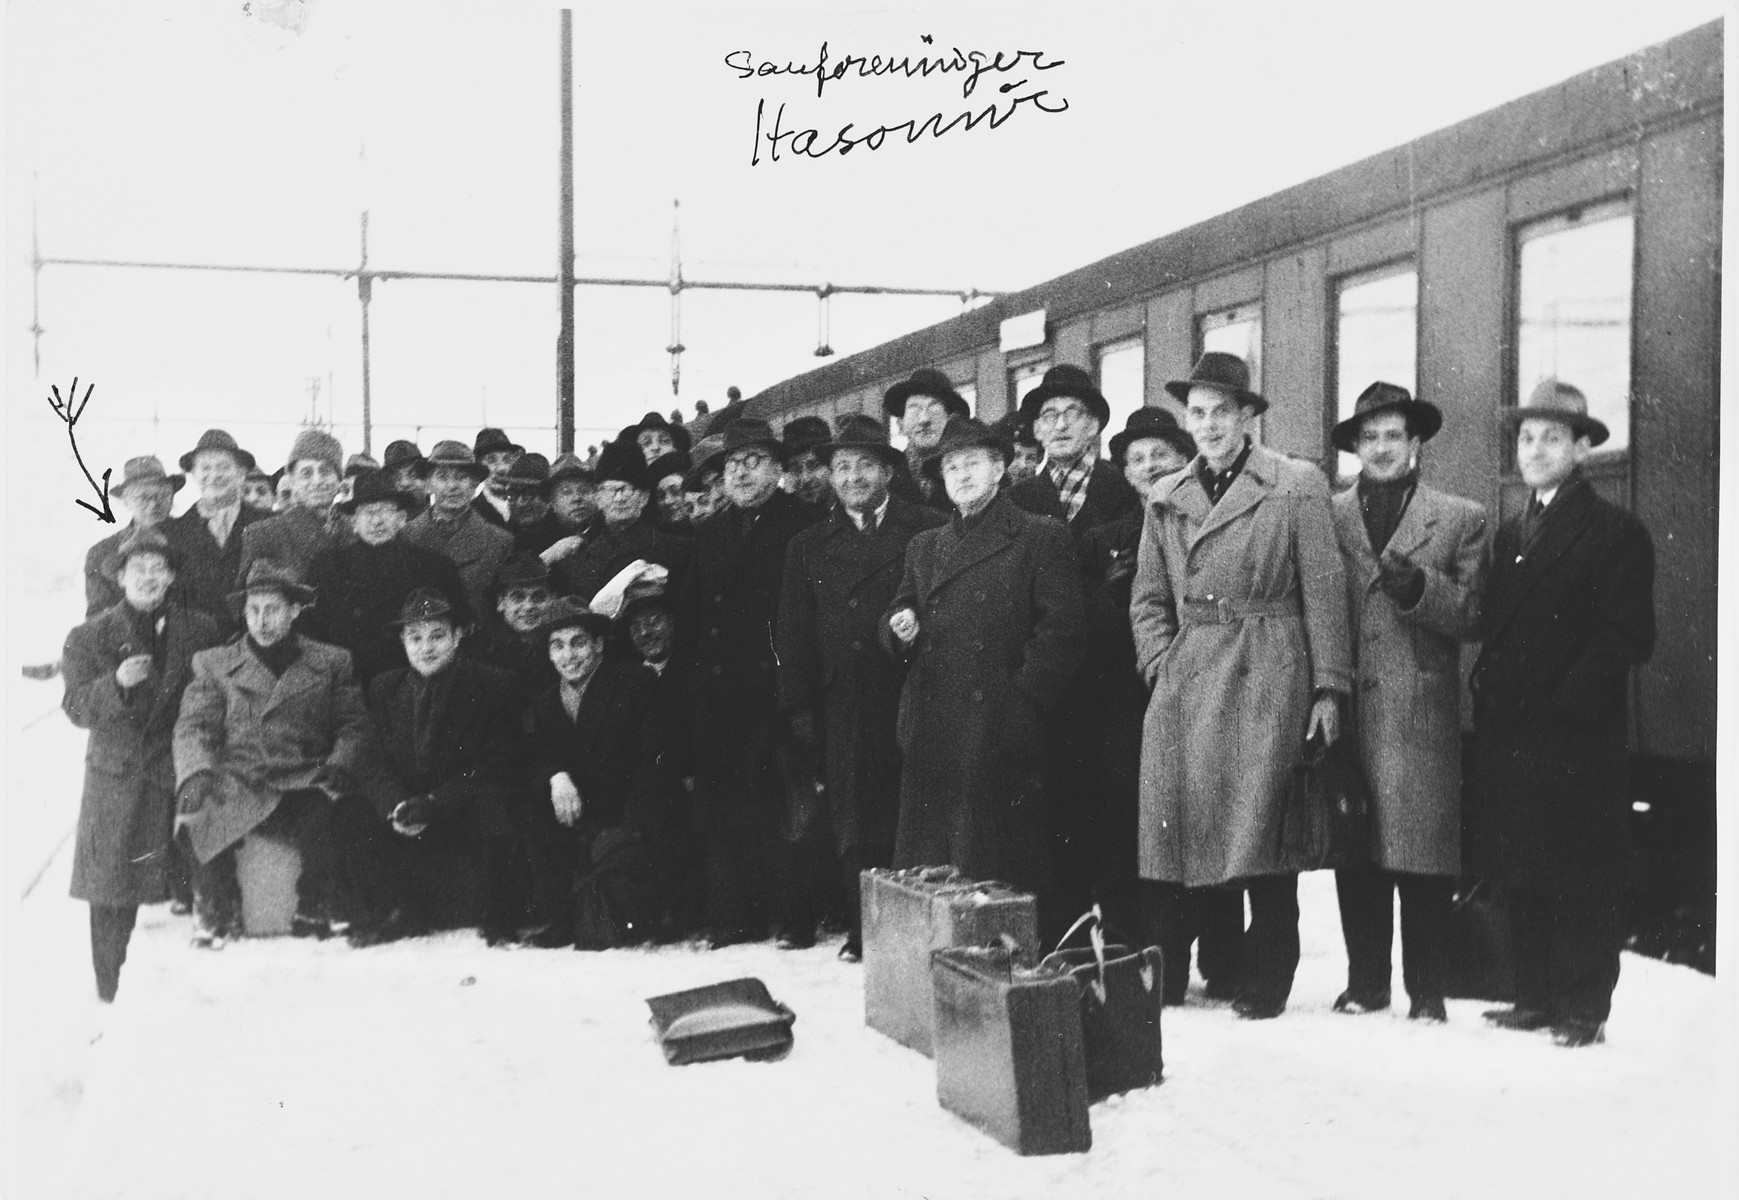 Group portrait of members of the Hasomir Jewish choir at the Hovedbanegarden train station in Copenhagen.  Among those pictured is Bernhard Diament (second from the left).